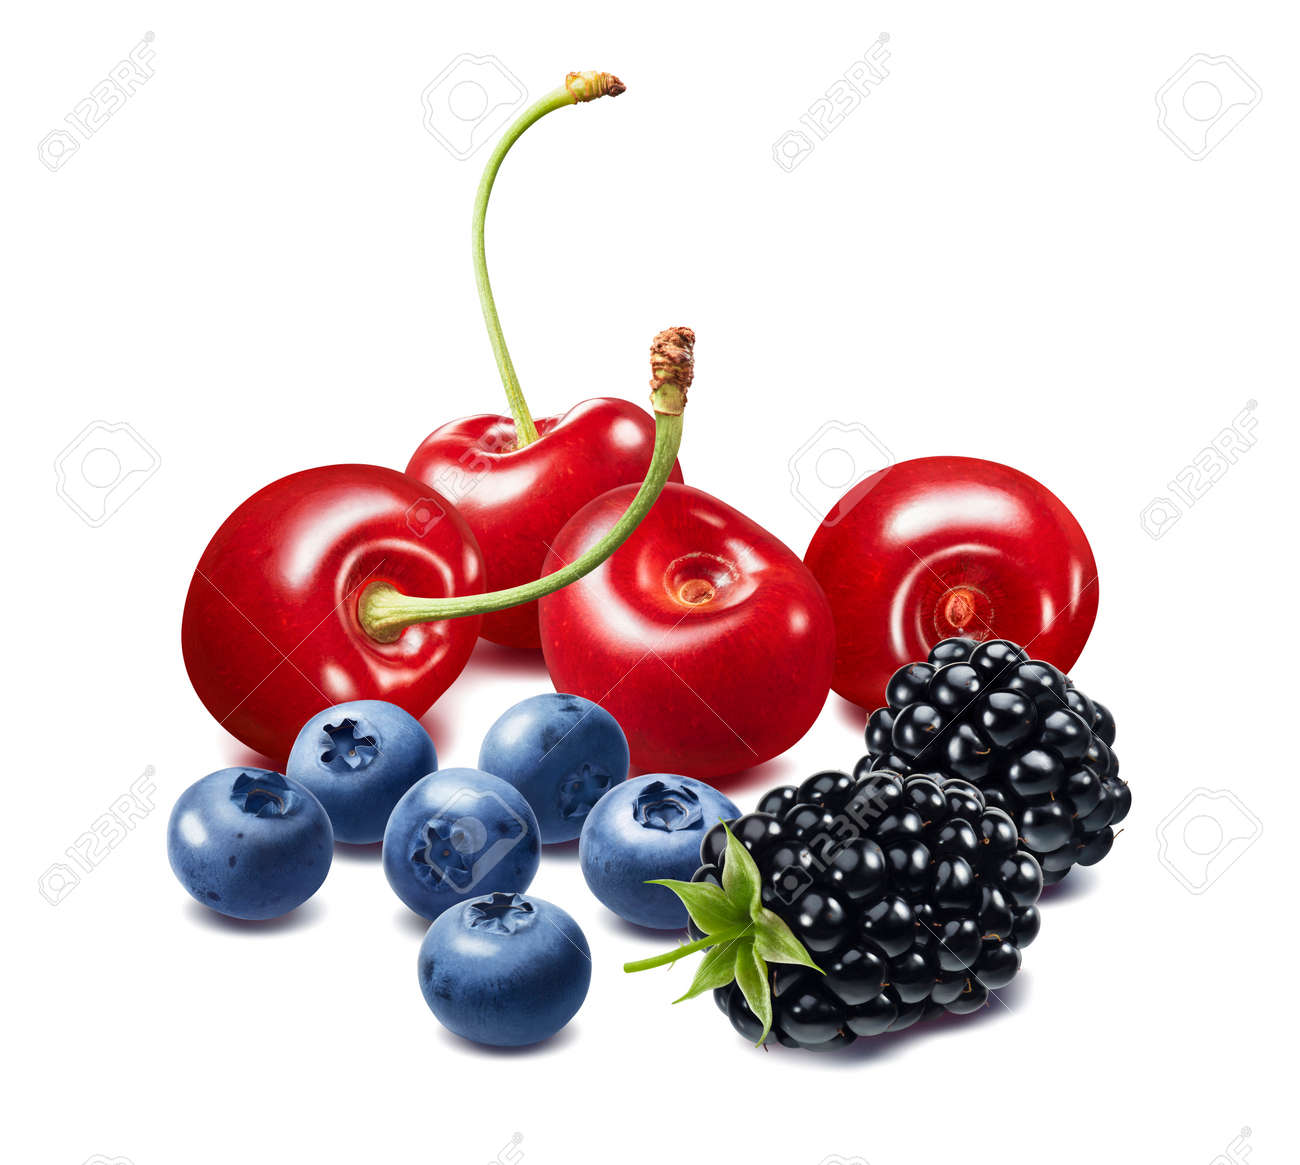 Cherry, blueberry and blackberry berries isolated on white background. Package design element with clipping path - 172432372